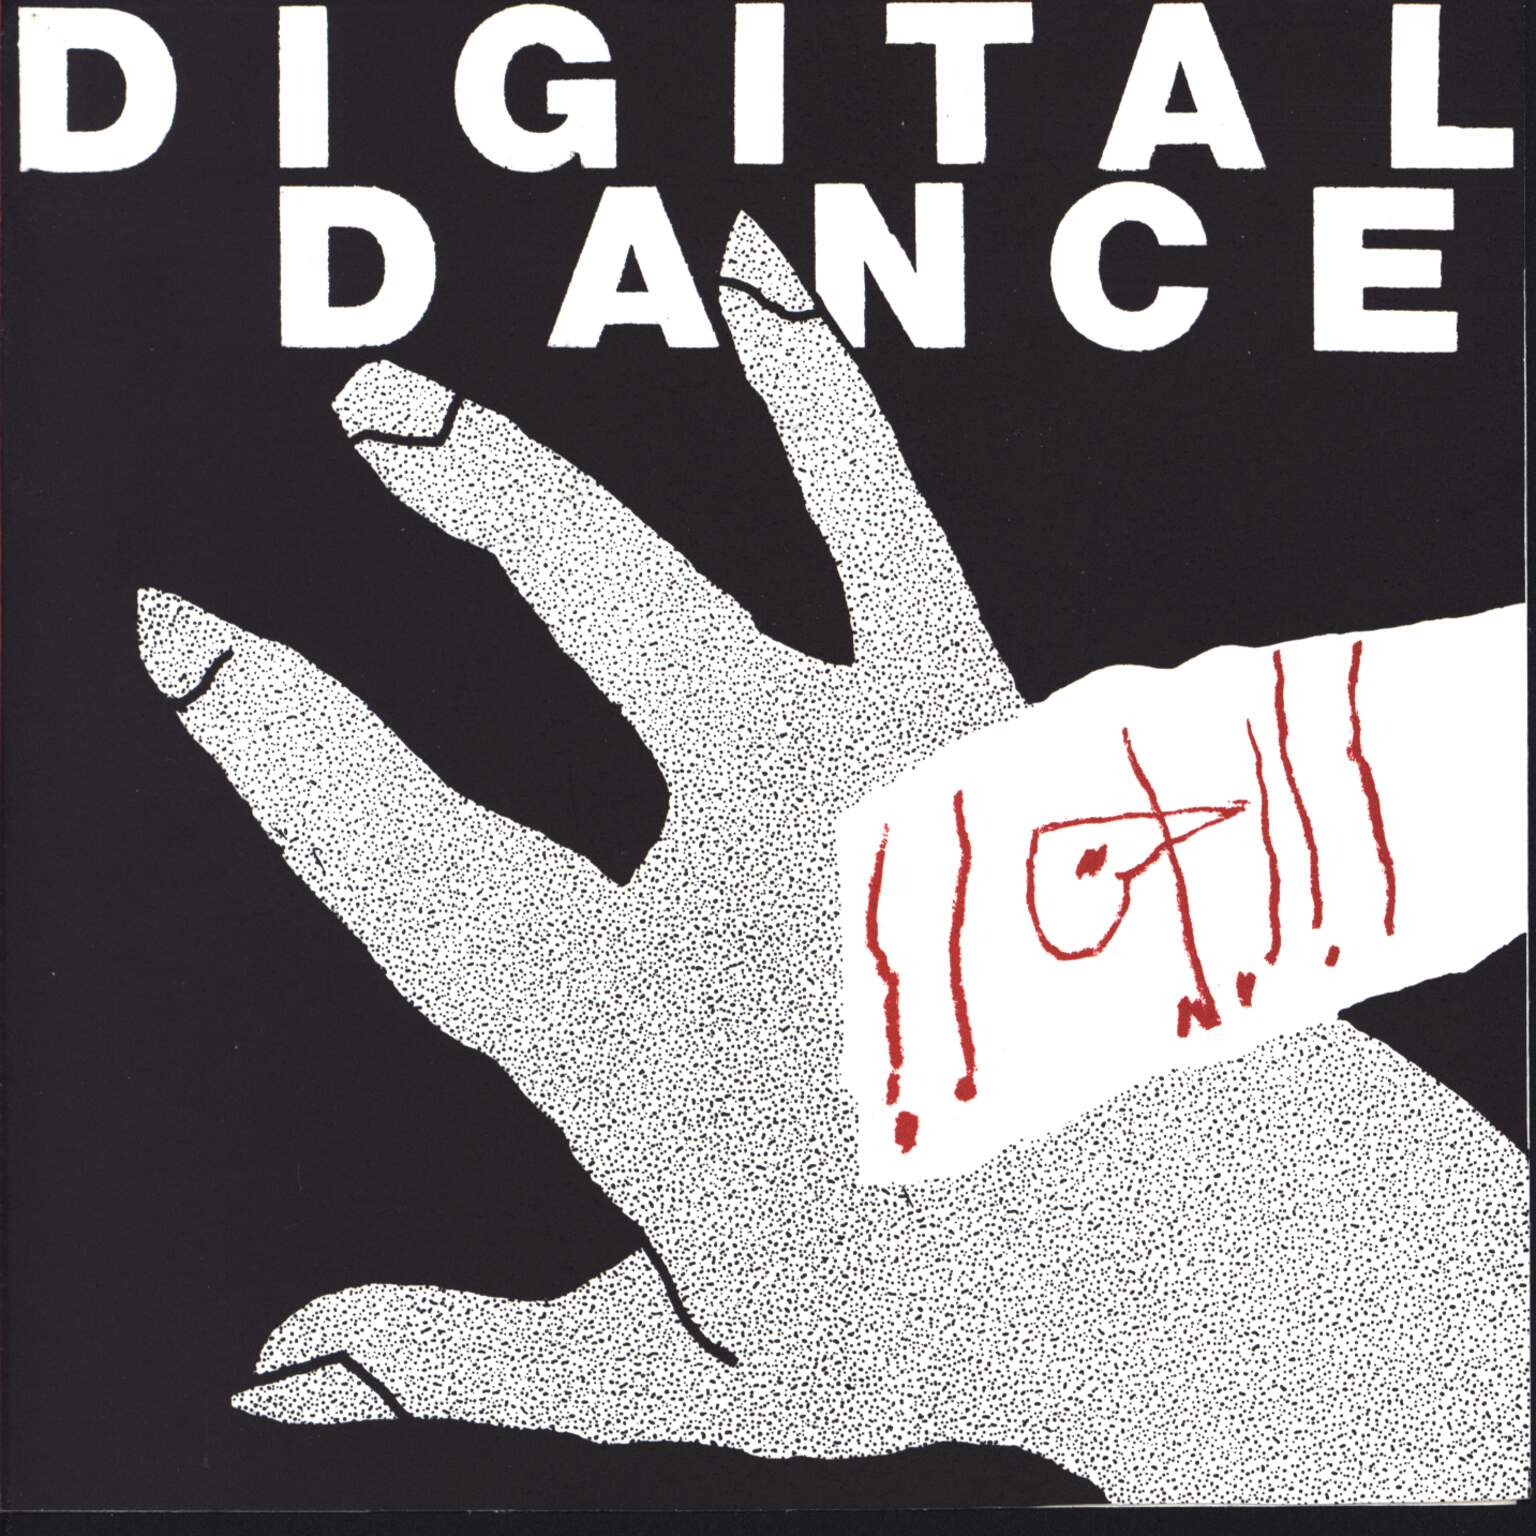 "Digital Dance: Faulty, 7"" Single (Vinyl)"